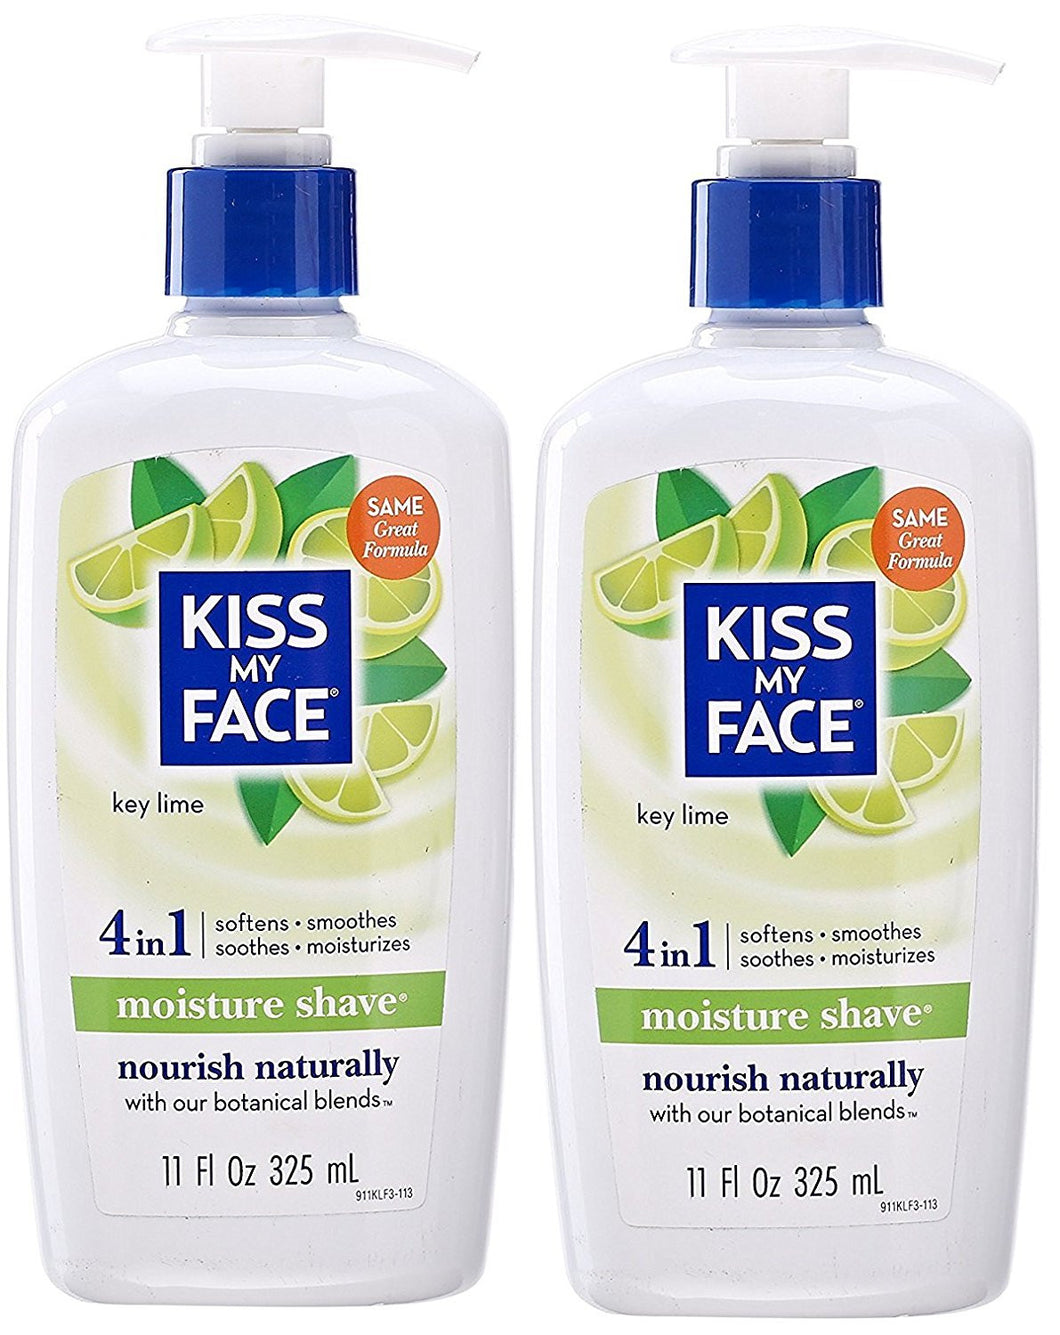 Kiss My Face Key Lime Shaving Cream, 11 fl. oz. (Pack of 2)